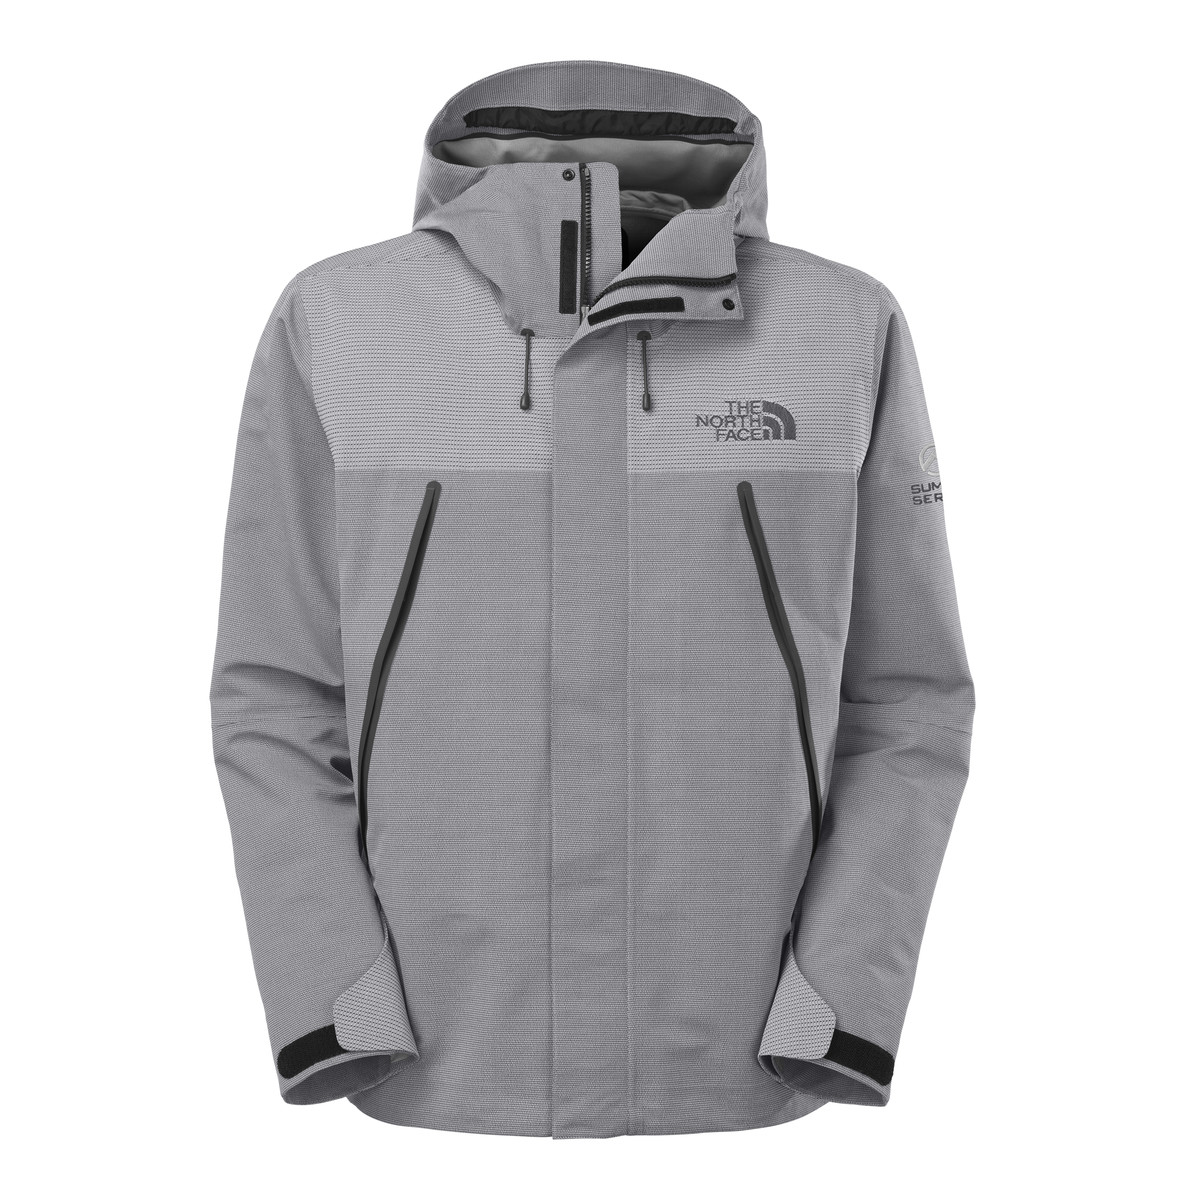 The North Face FuseForm Mountain Jacket